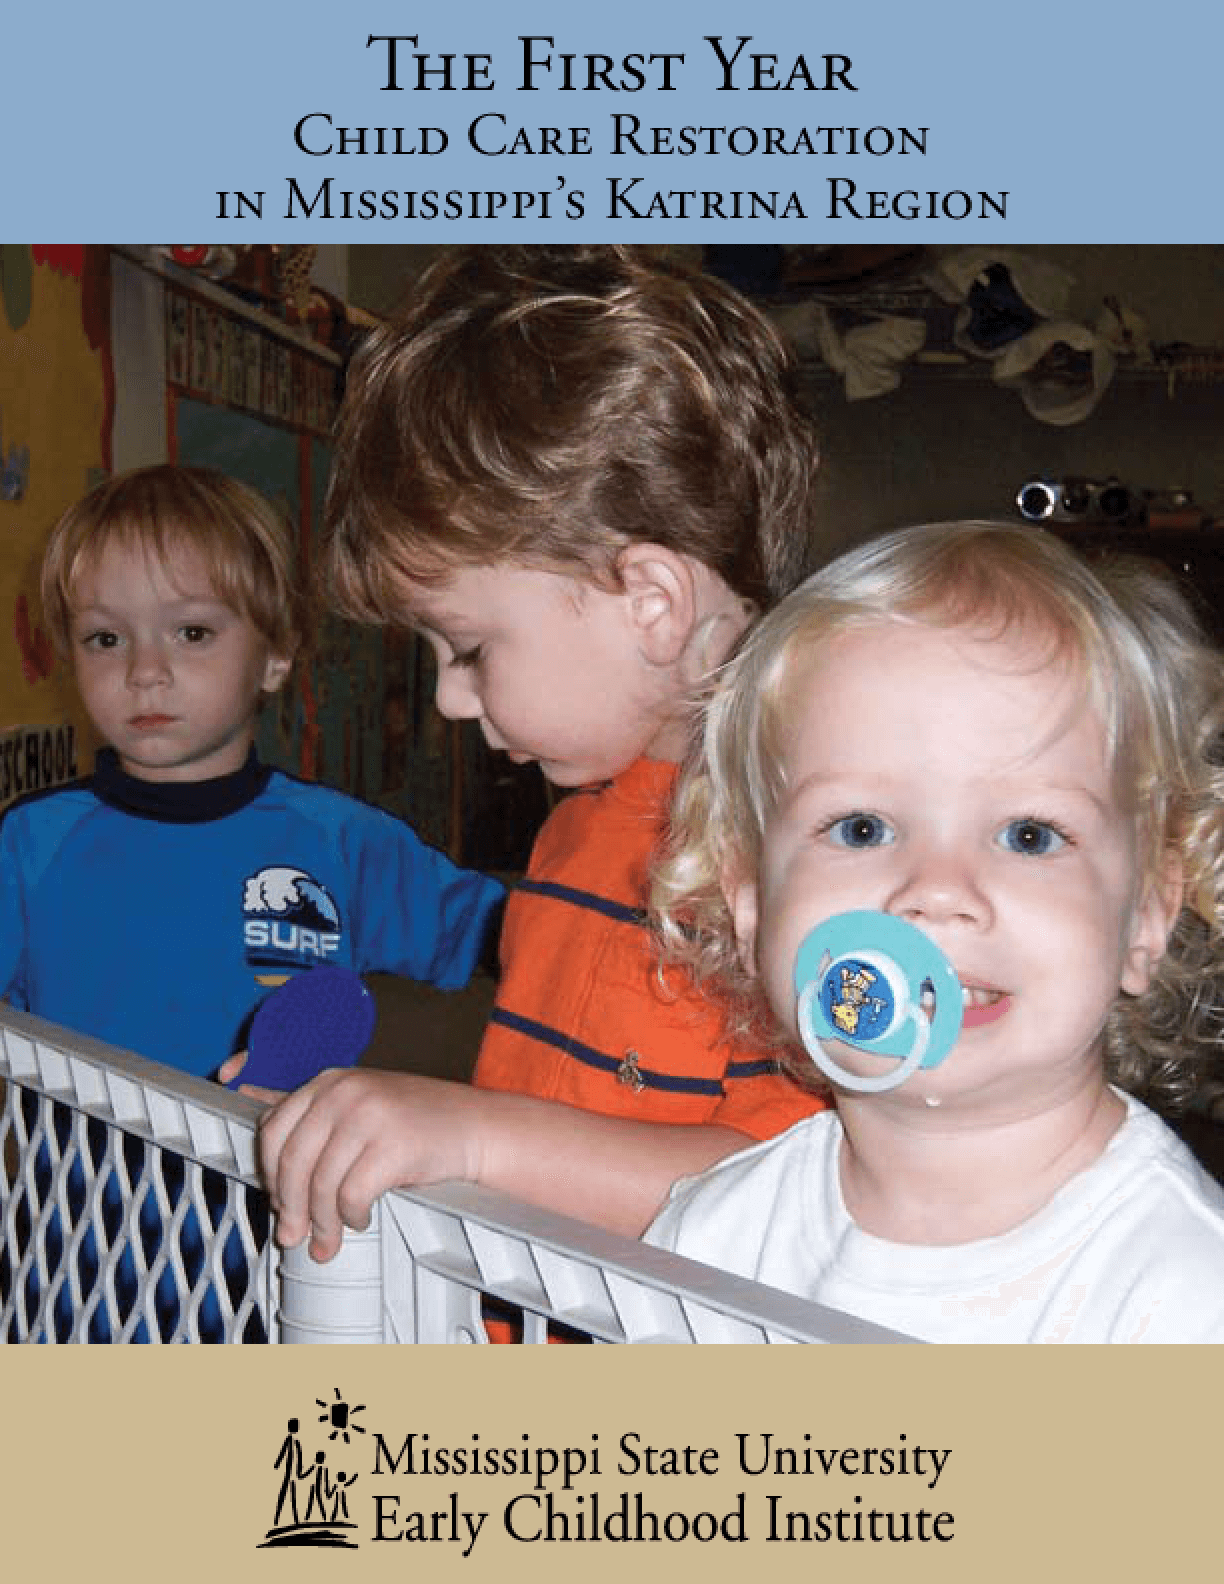 The First Year: Child Care Restoration in Mississippi's Katrina Region